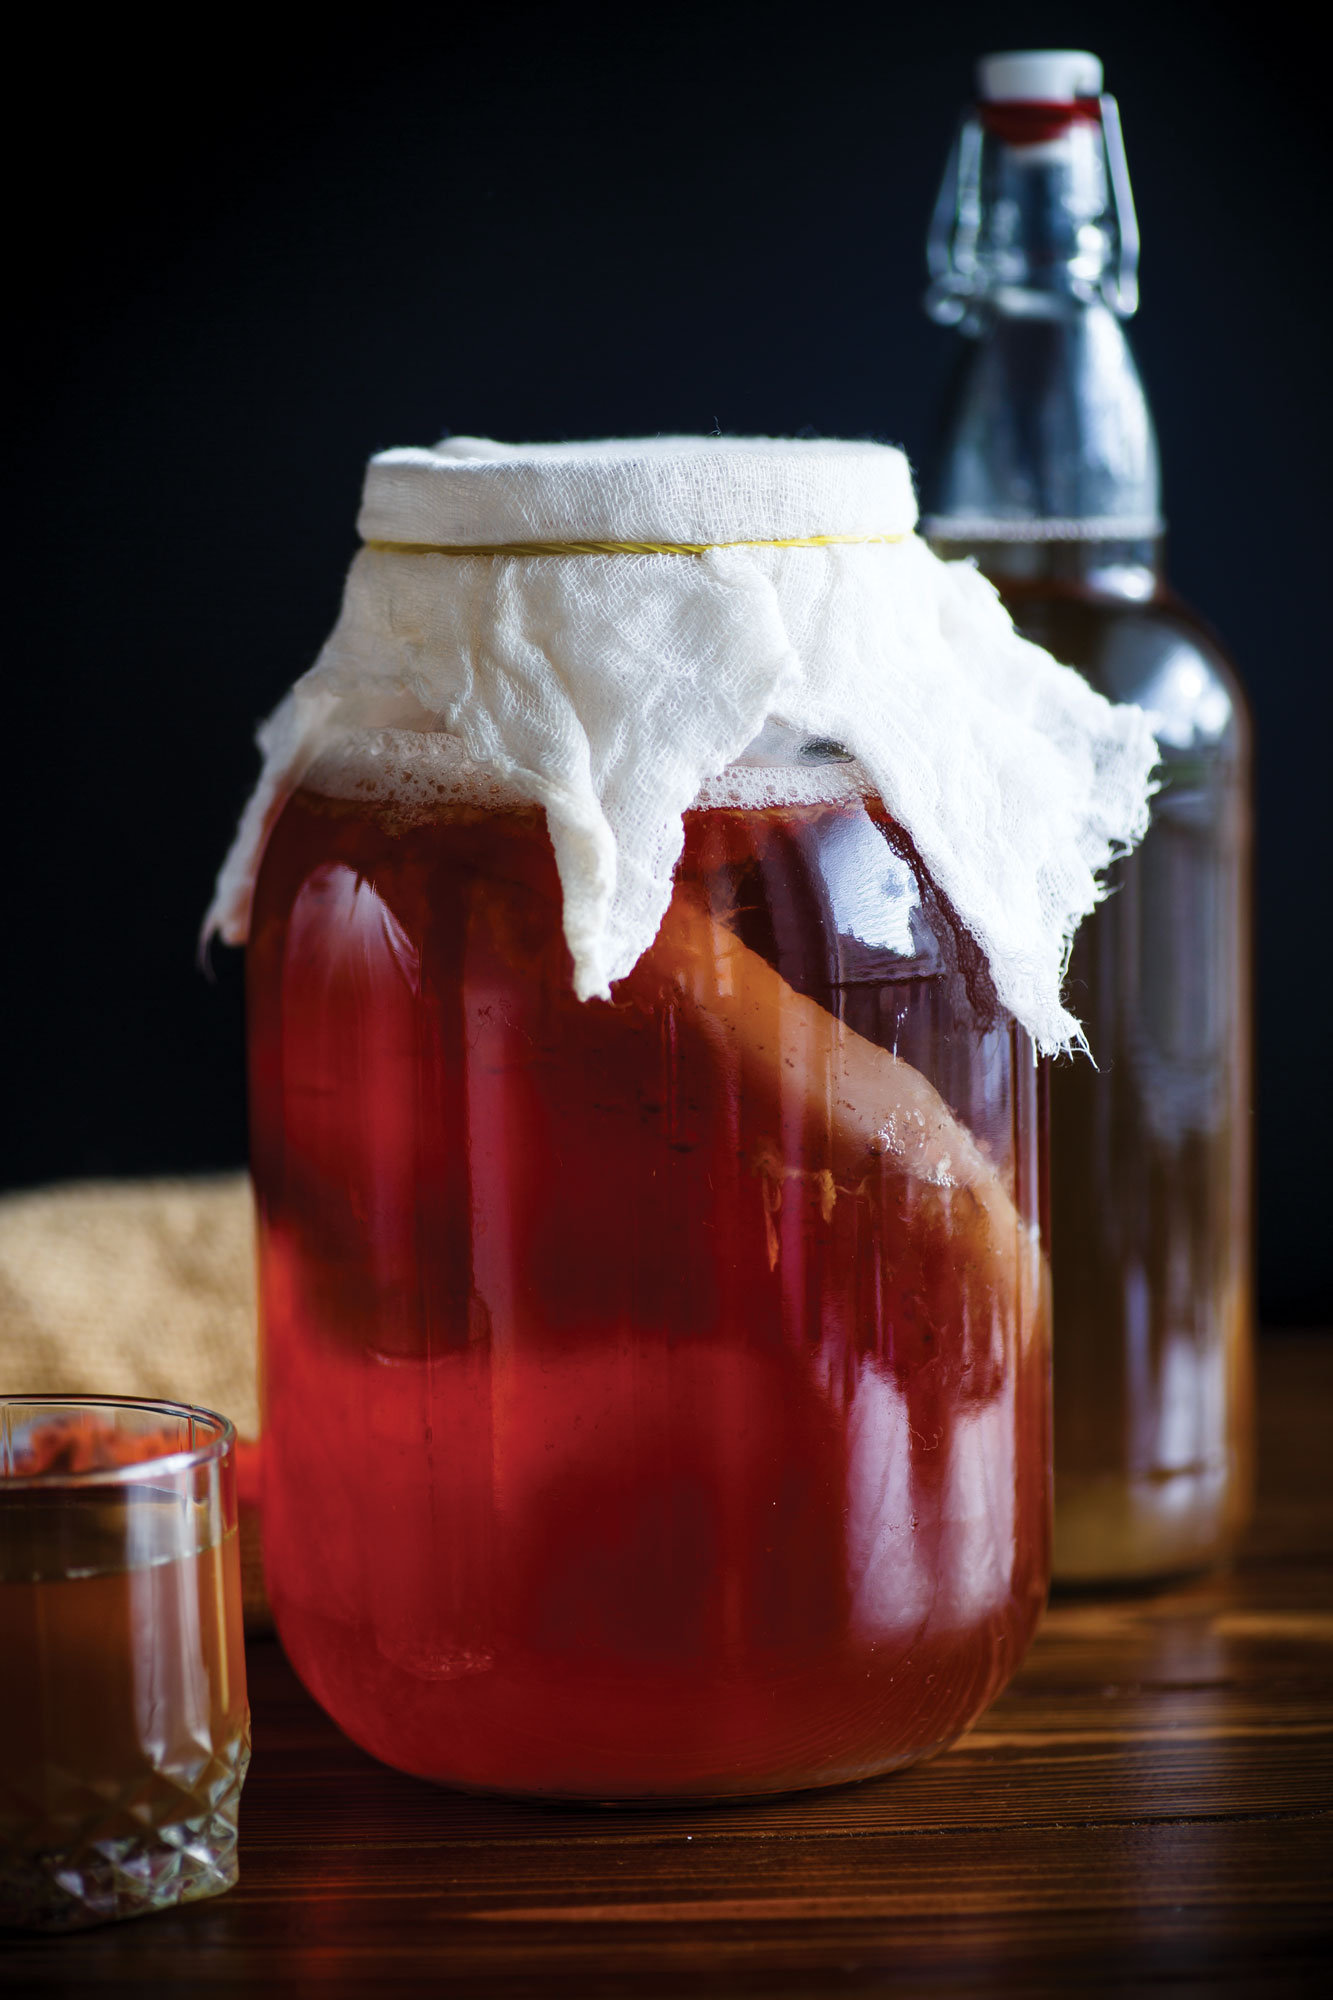 A jar of kombucha fermenting with a bottle in the background